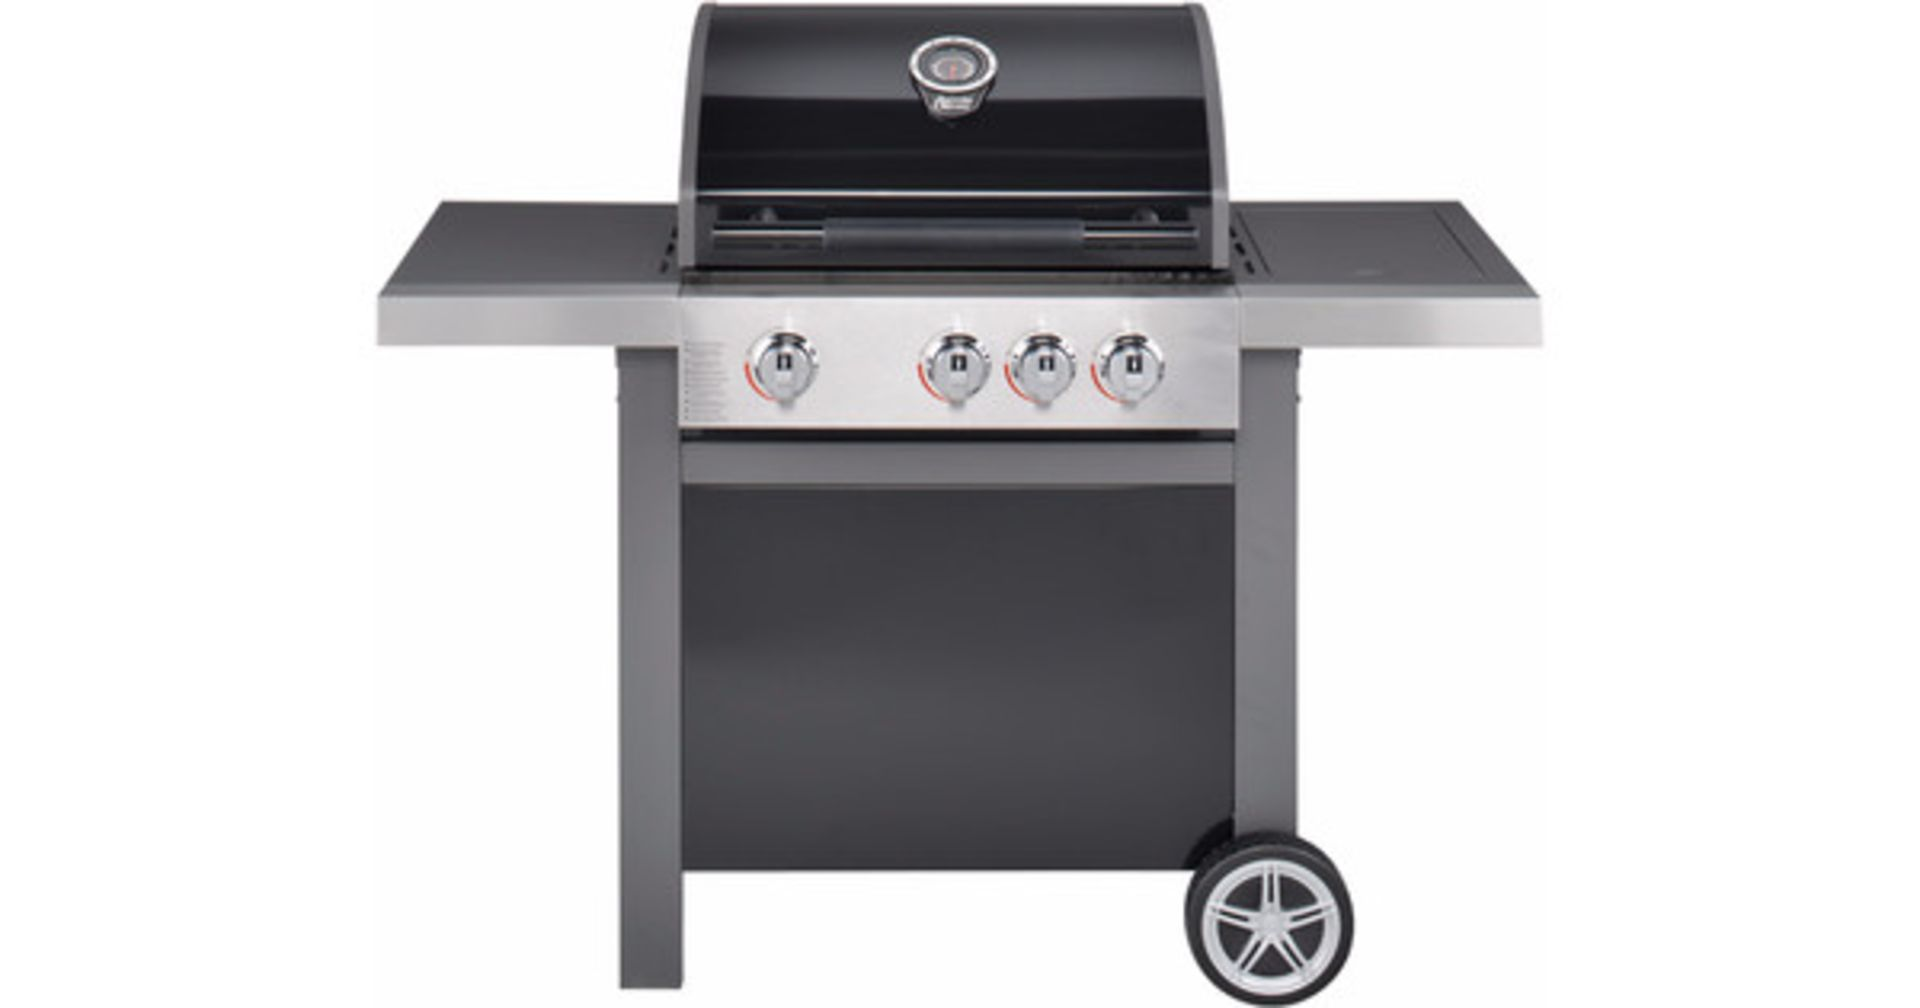 Lot 15022 - + VAT Brand New Jamie Oliver Home 3s Barbecue - Three Burners With Cast Iron Grills - Includes Side